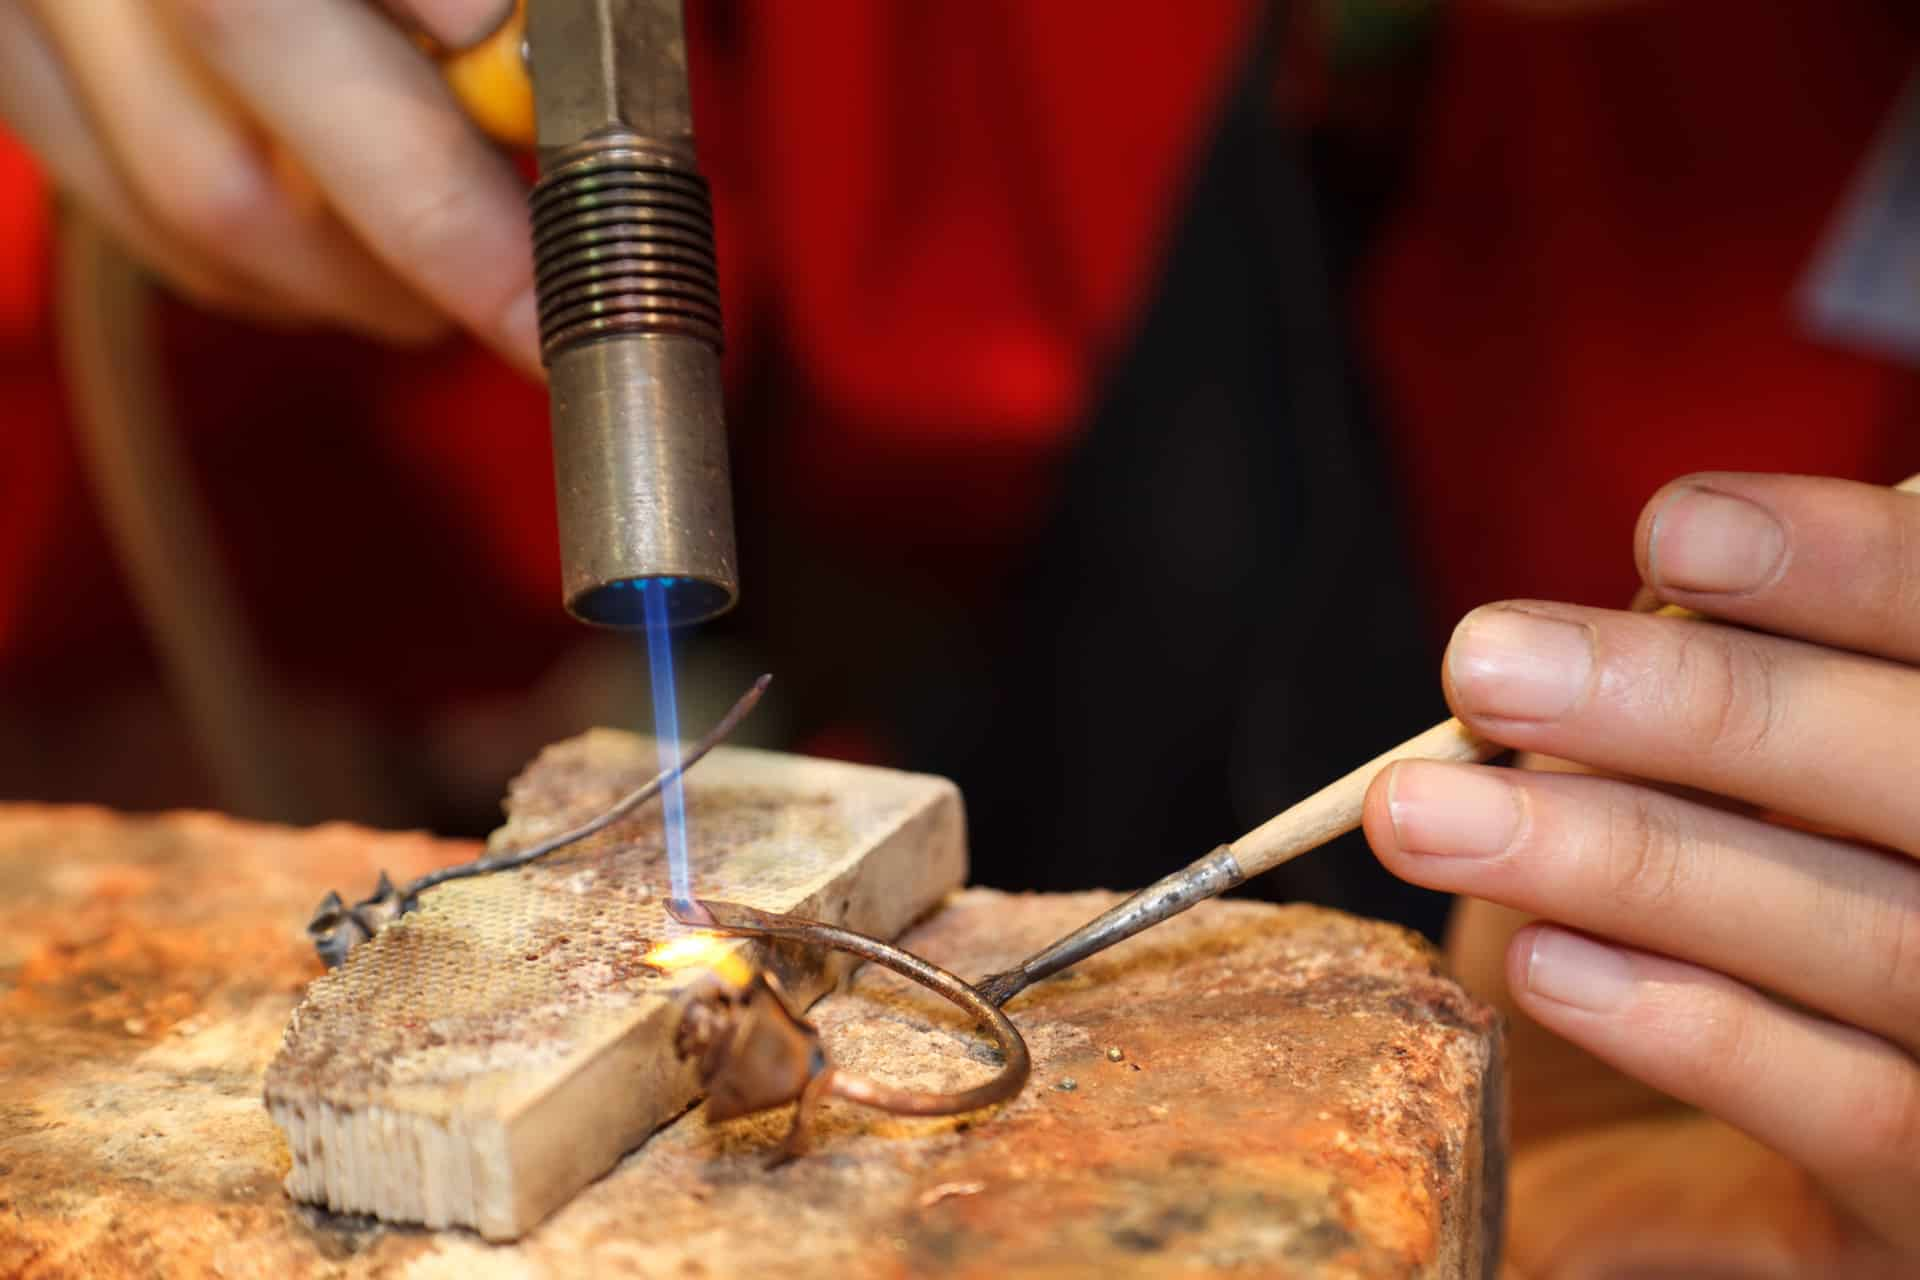 Soldering work on a gold ring